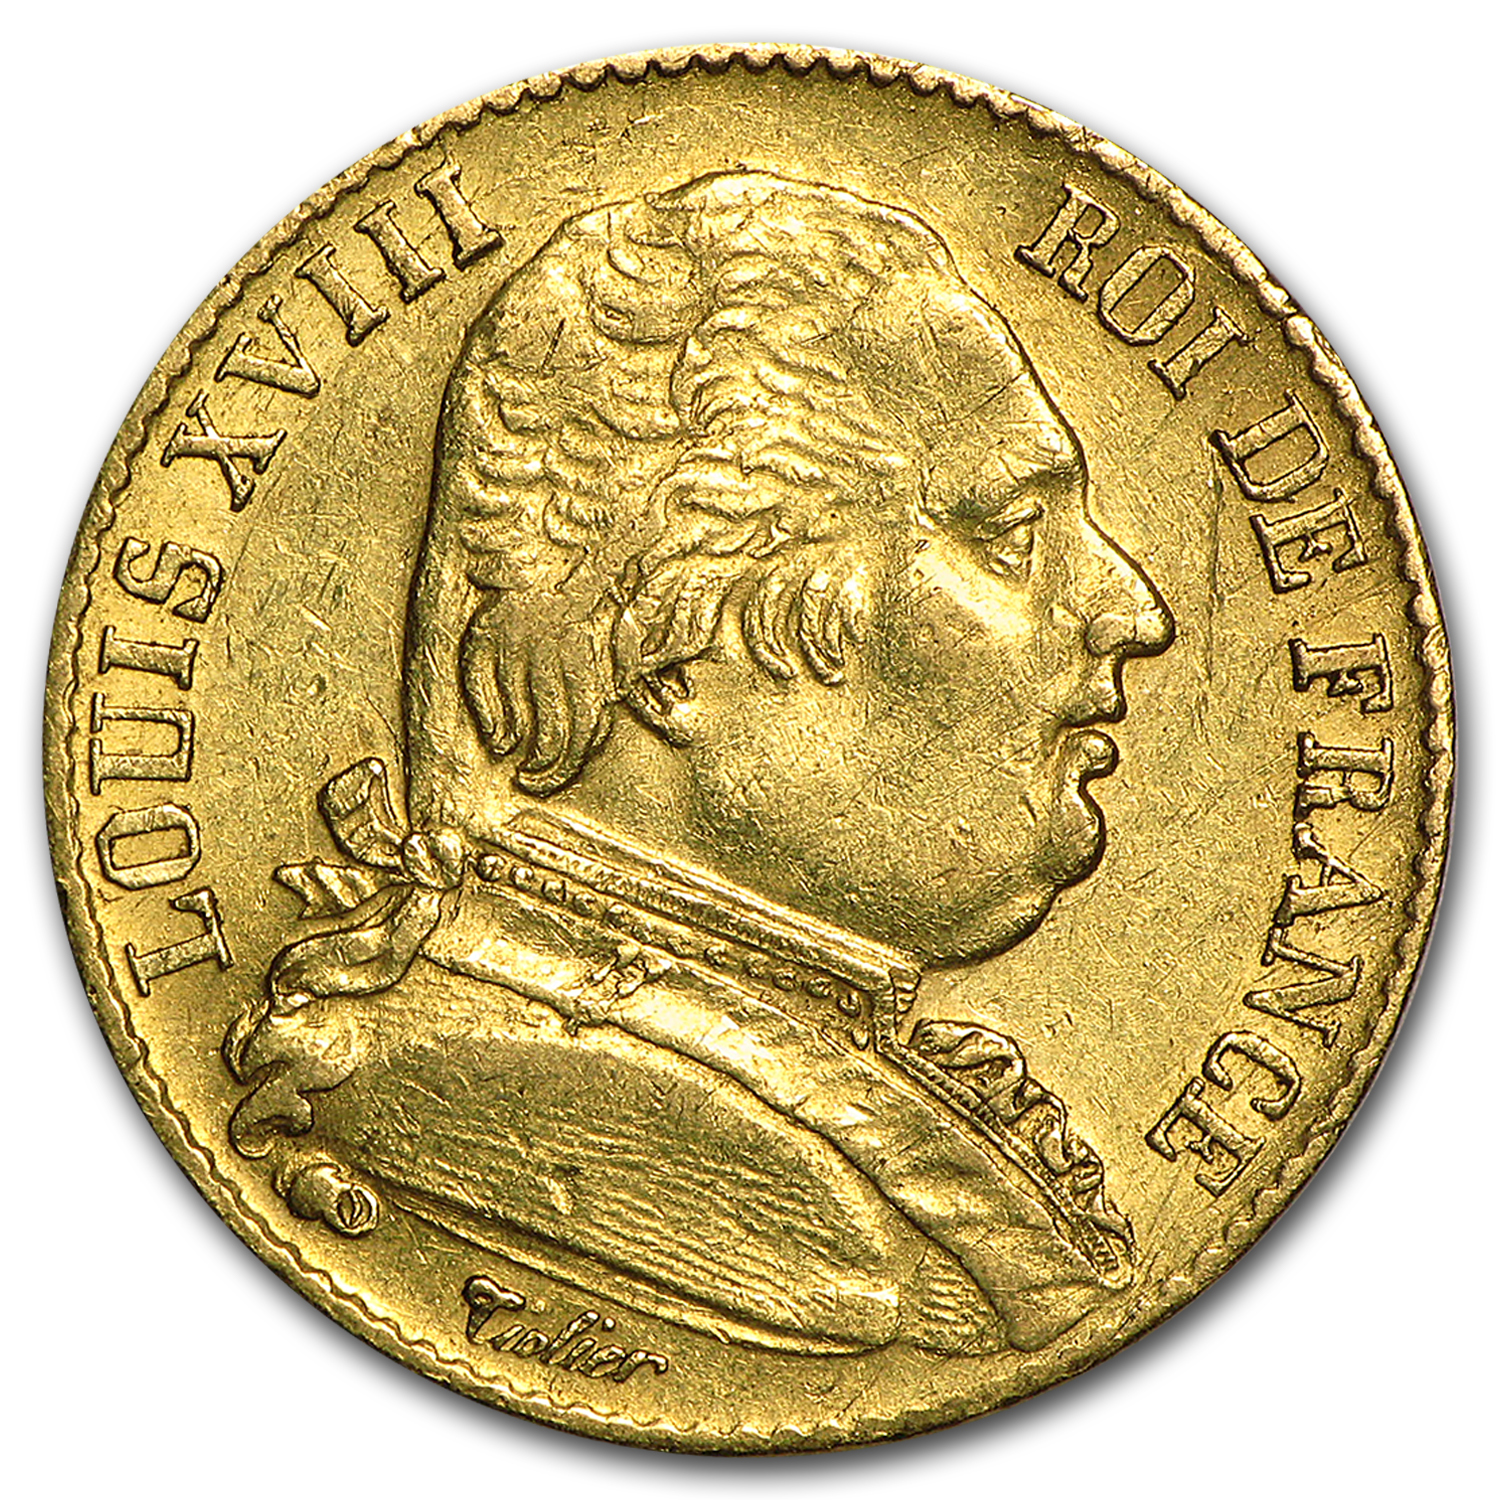 France 1814-1815 Gold 20 Francs of Louis XVIII - XF